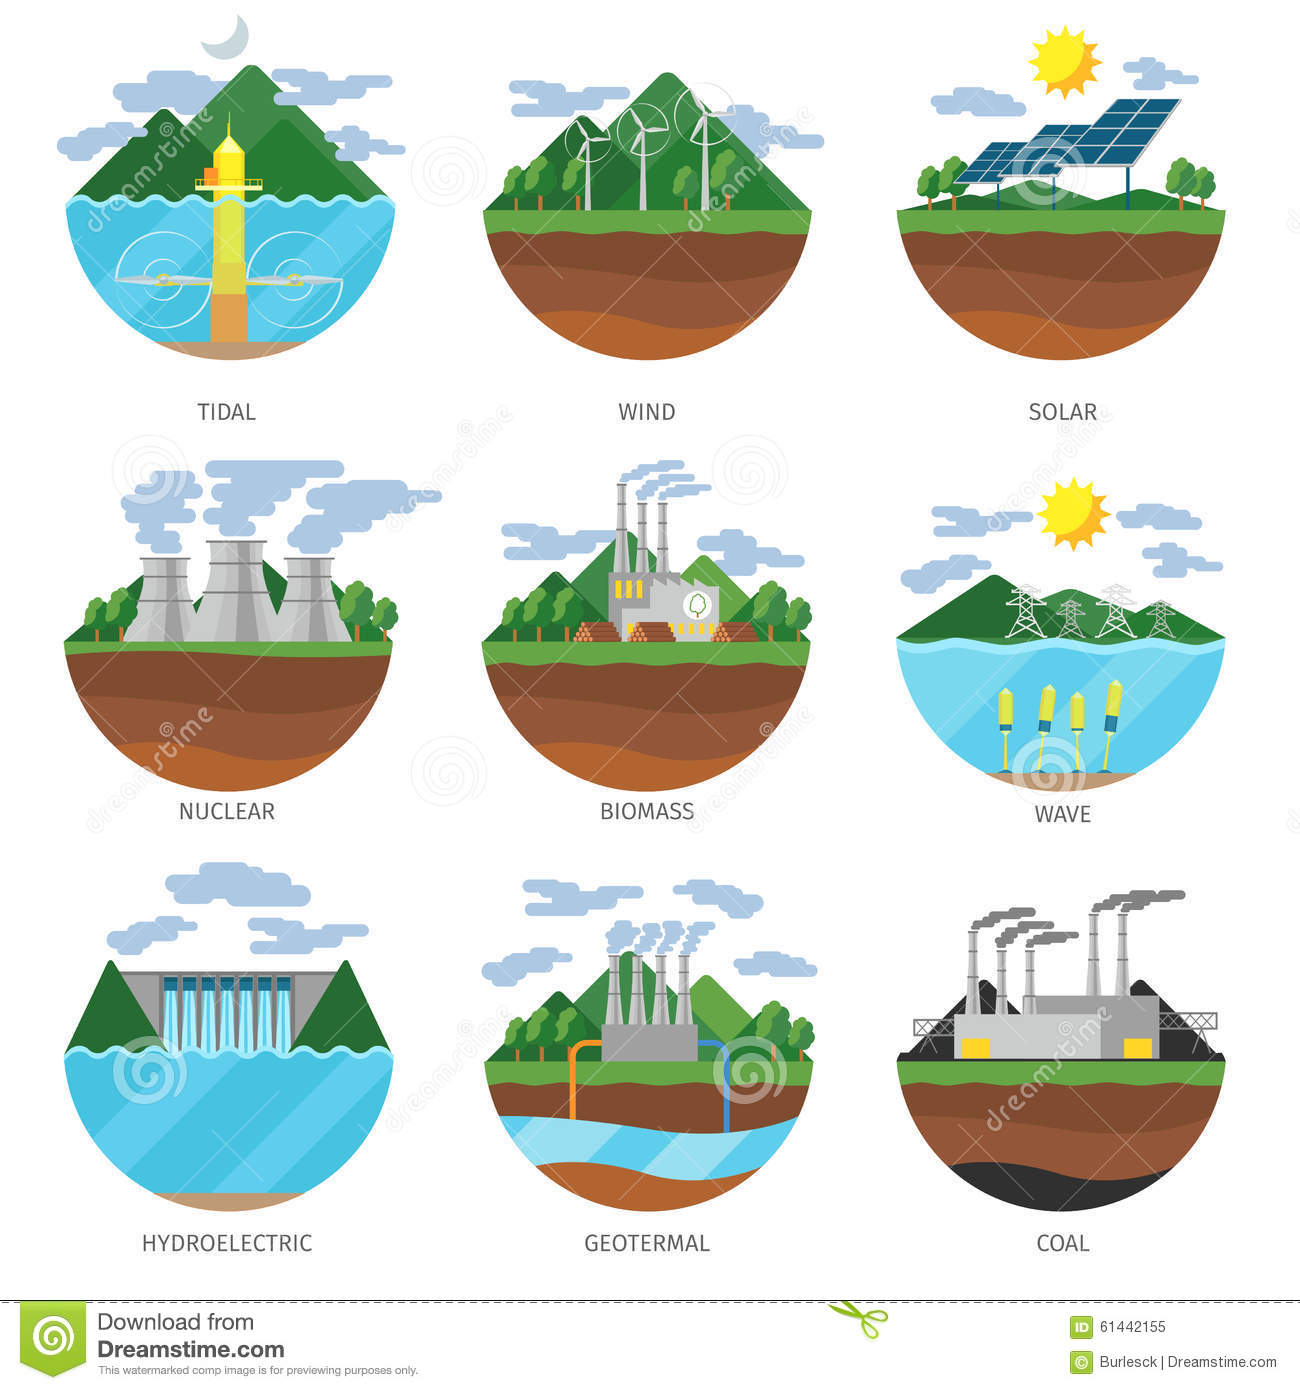 Stock Illustration Generation Energy Types Power Plant Icons Vector Set Renewable Alternative Solar Tidal Wind Geothermal Biomass Wave Image61442155 on Hydro Resources